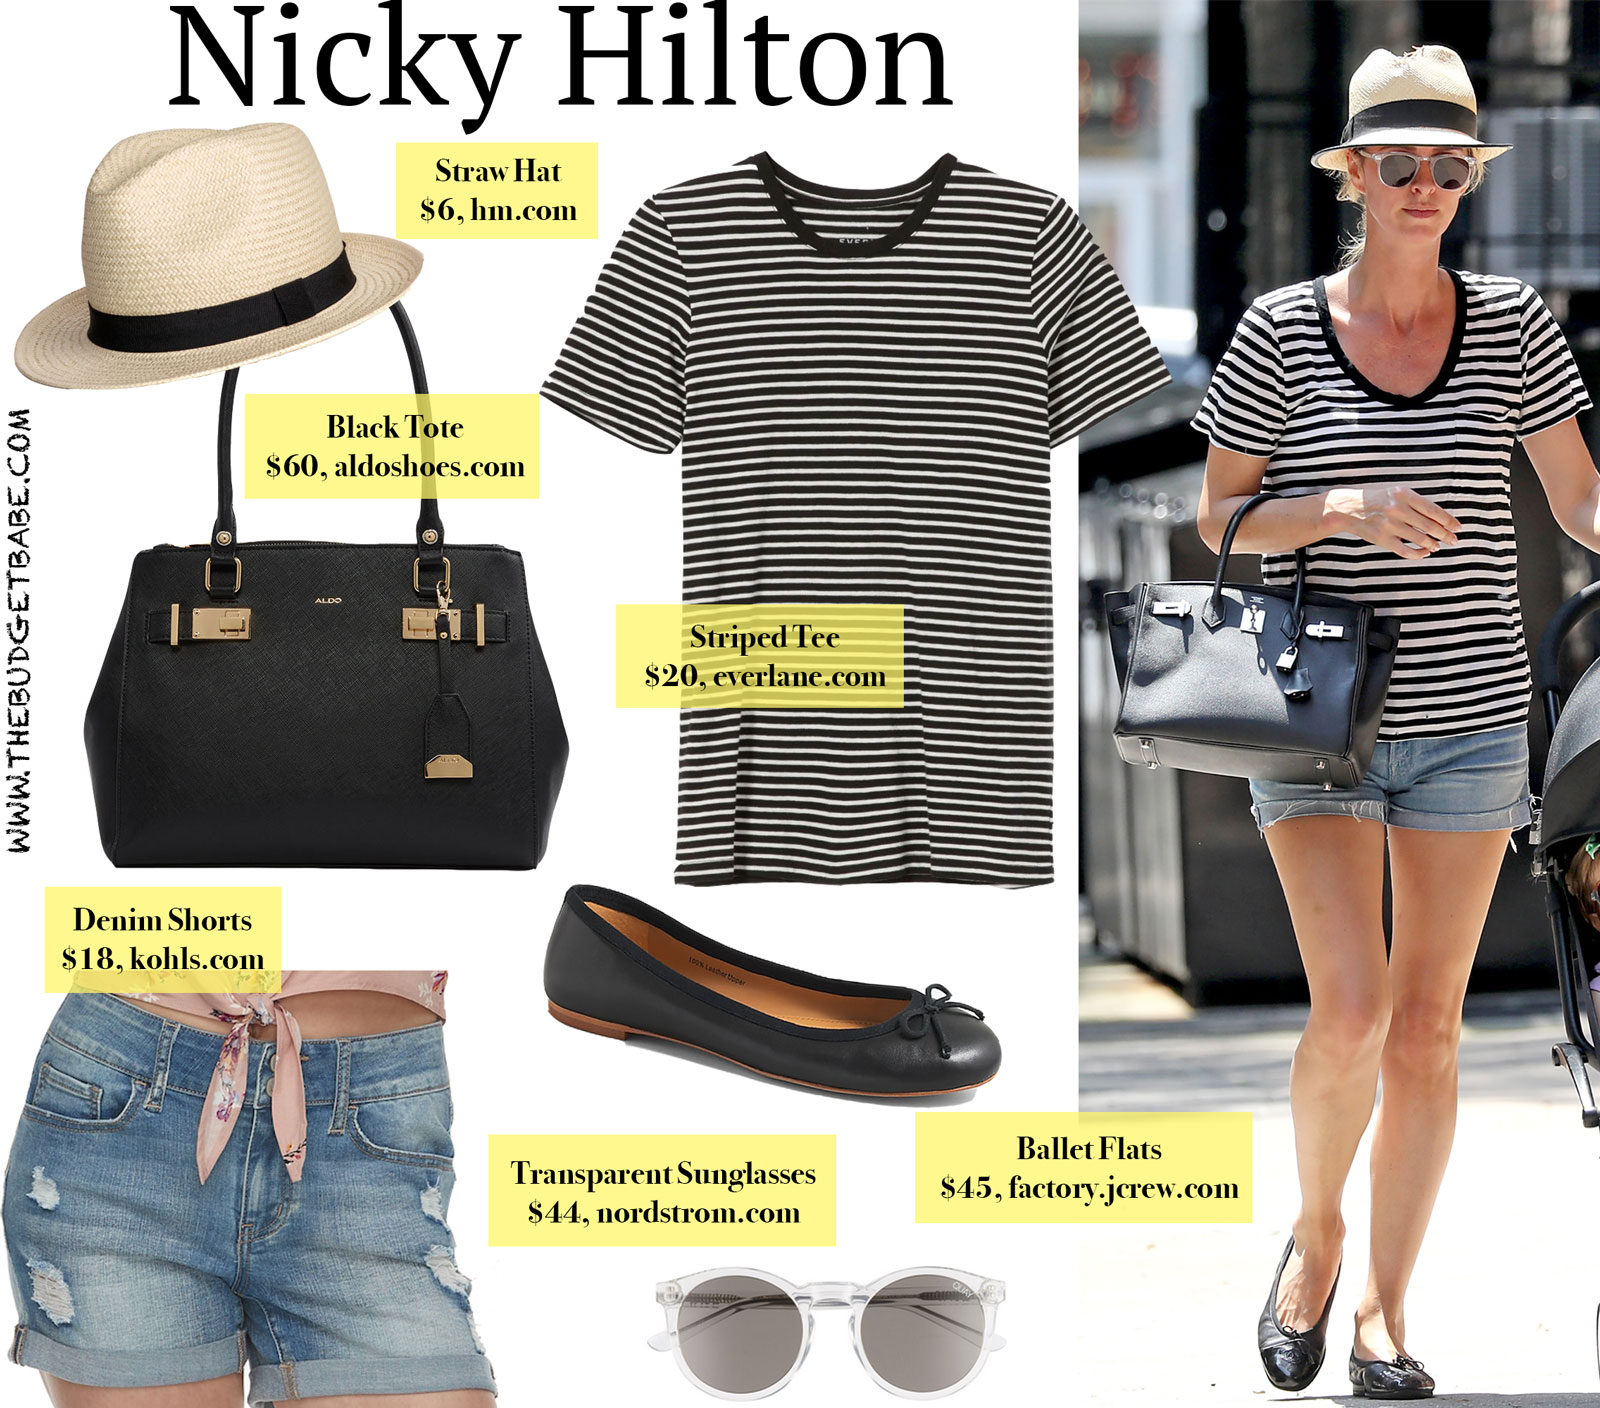 99470eedc8d Nicky Hilton Striped Tee and Black Tote Look for Less